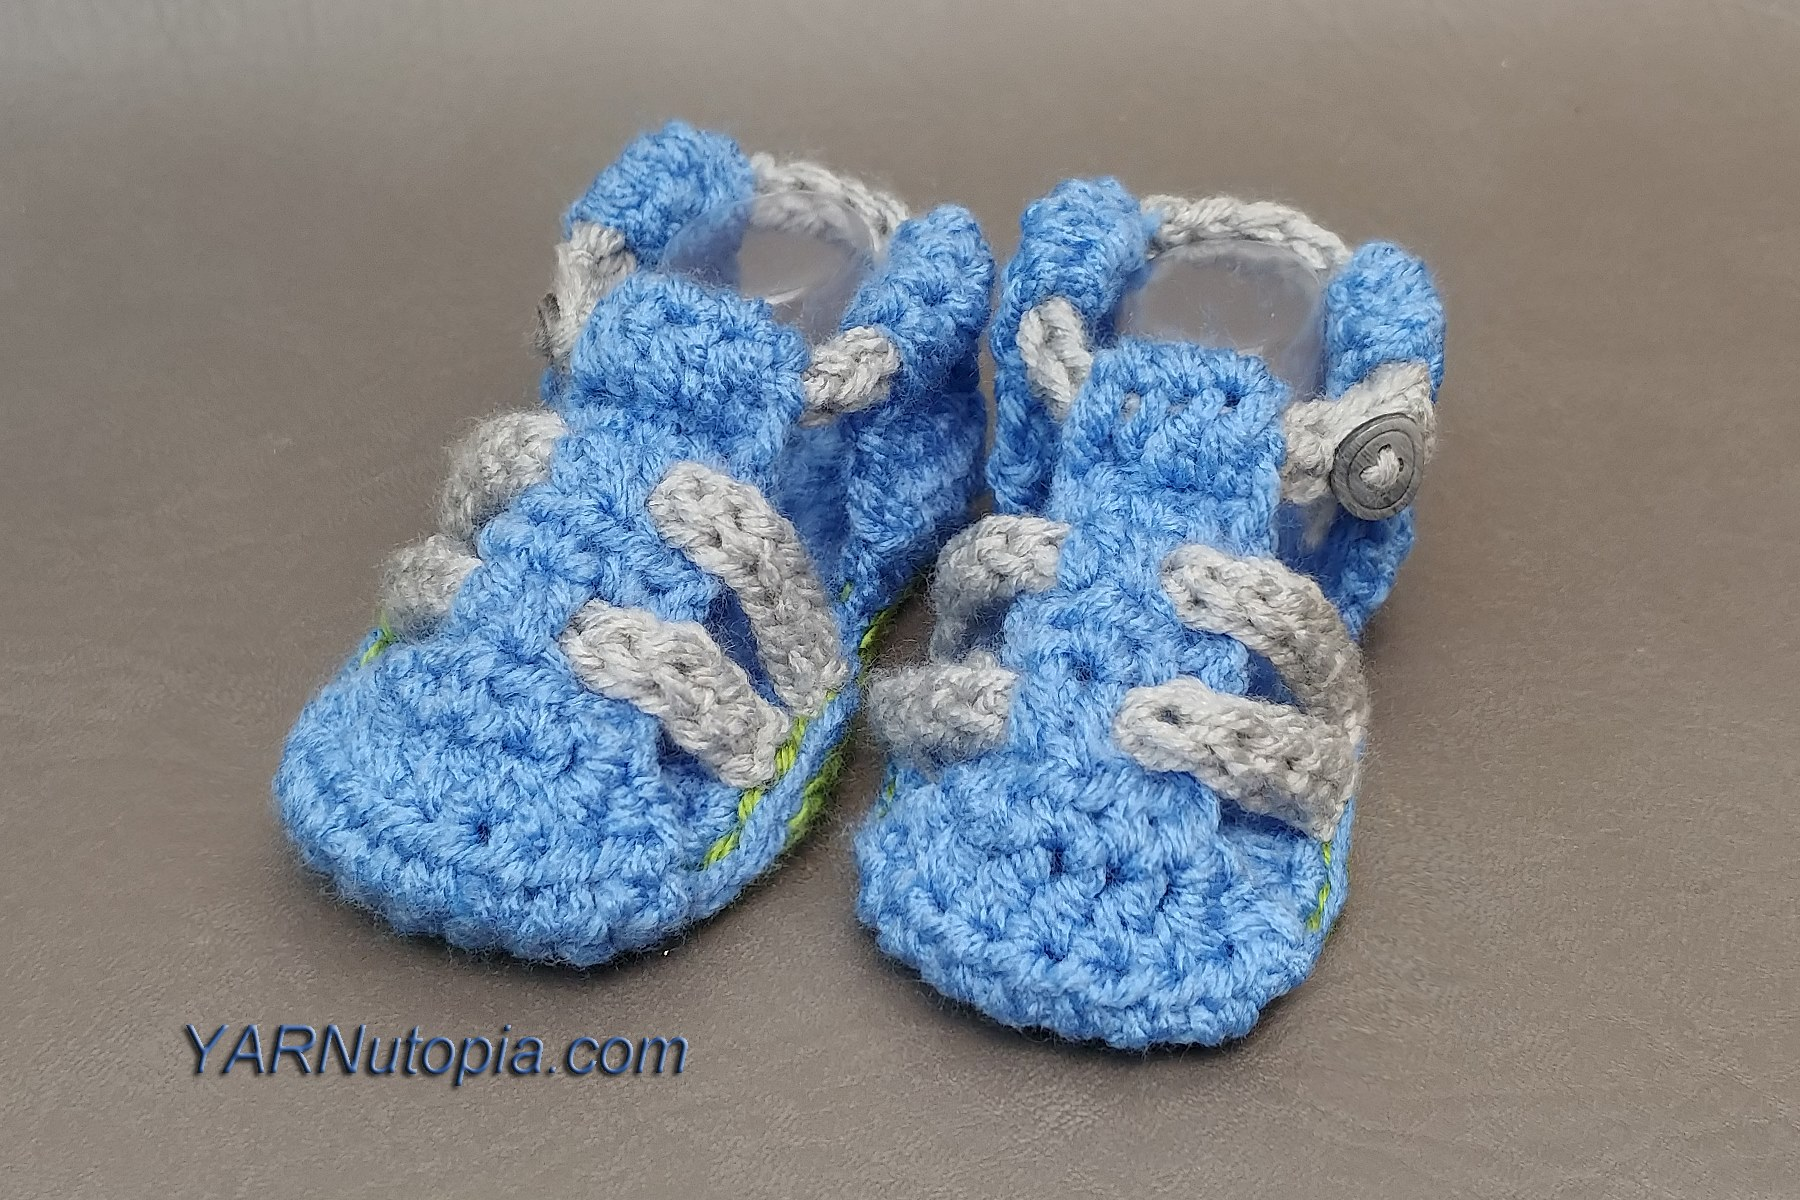 f8cd7d4b8 Time to start getting that wardrobe ready. Here is a cute little addition  for baby s layette. These baby hikers can be made in any color and added to  any ...